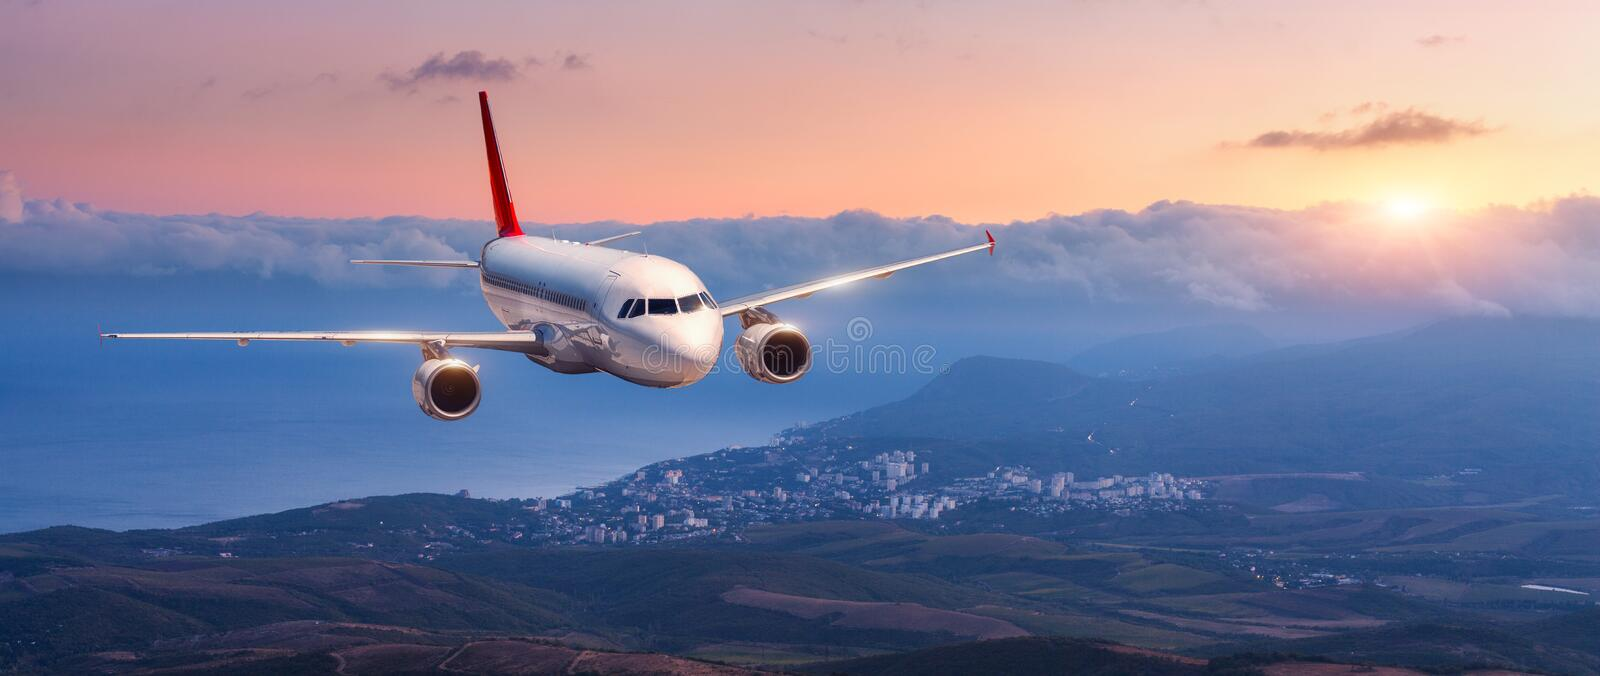 Landscape with white airplane is flying in the orange sky. Passenger airplane. Landscape with white airplane is flying in the orange sky with clouds over royalty free stock photo